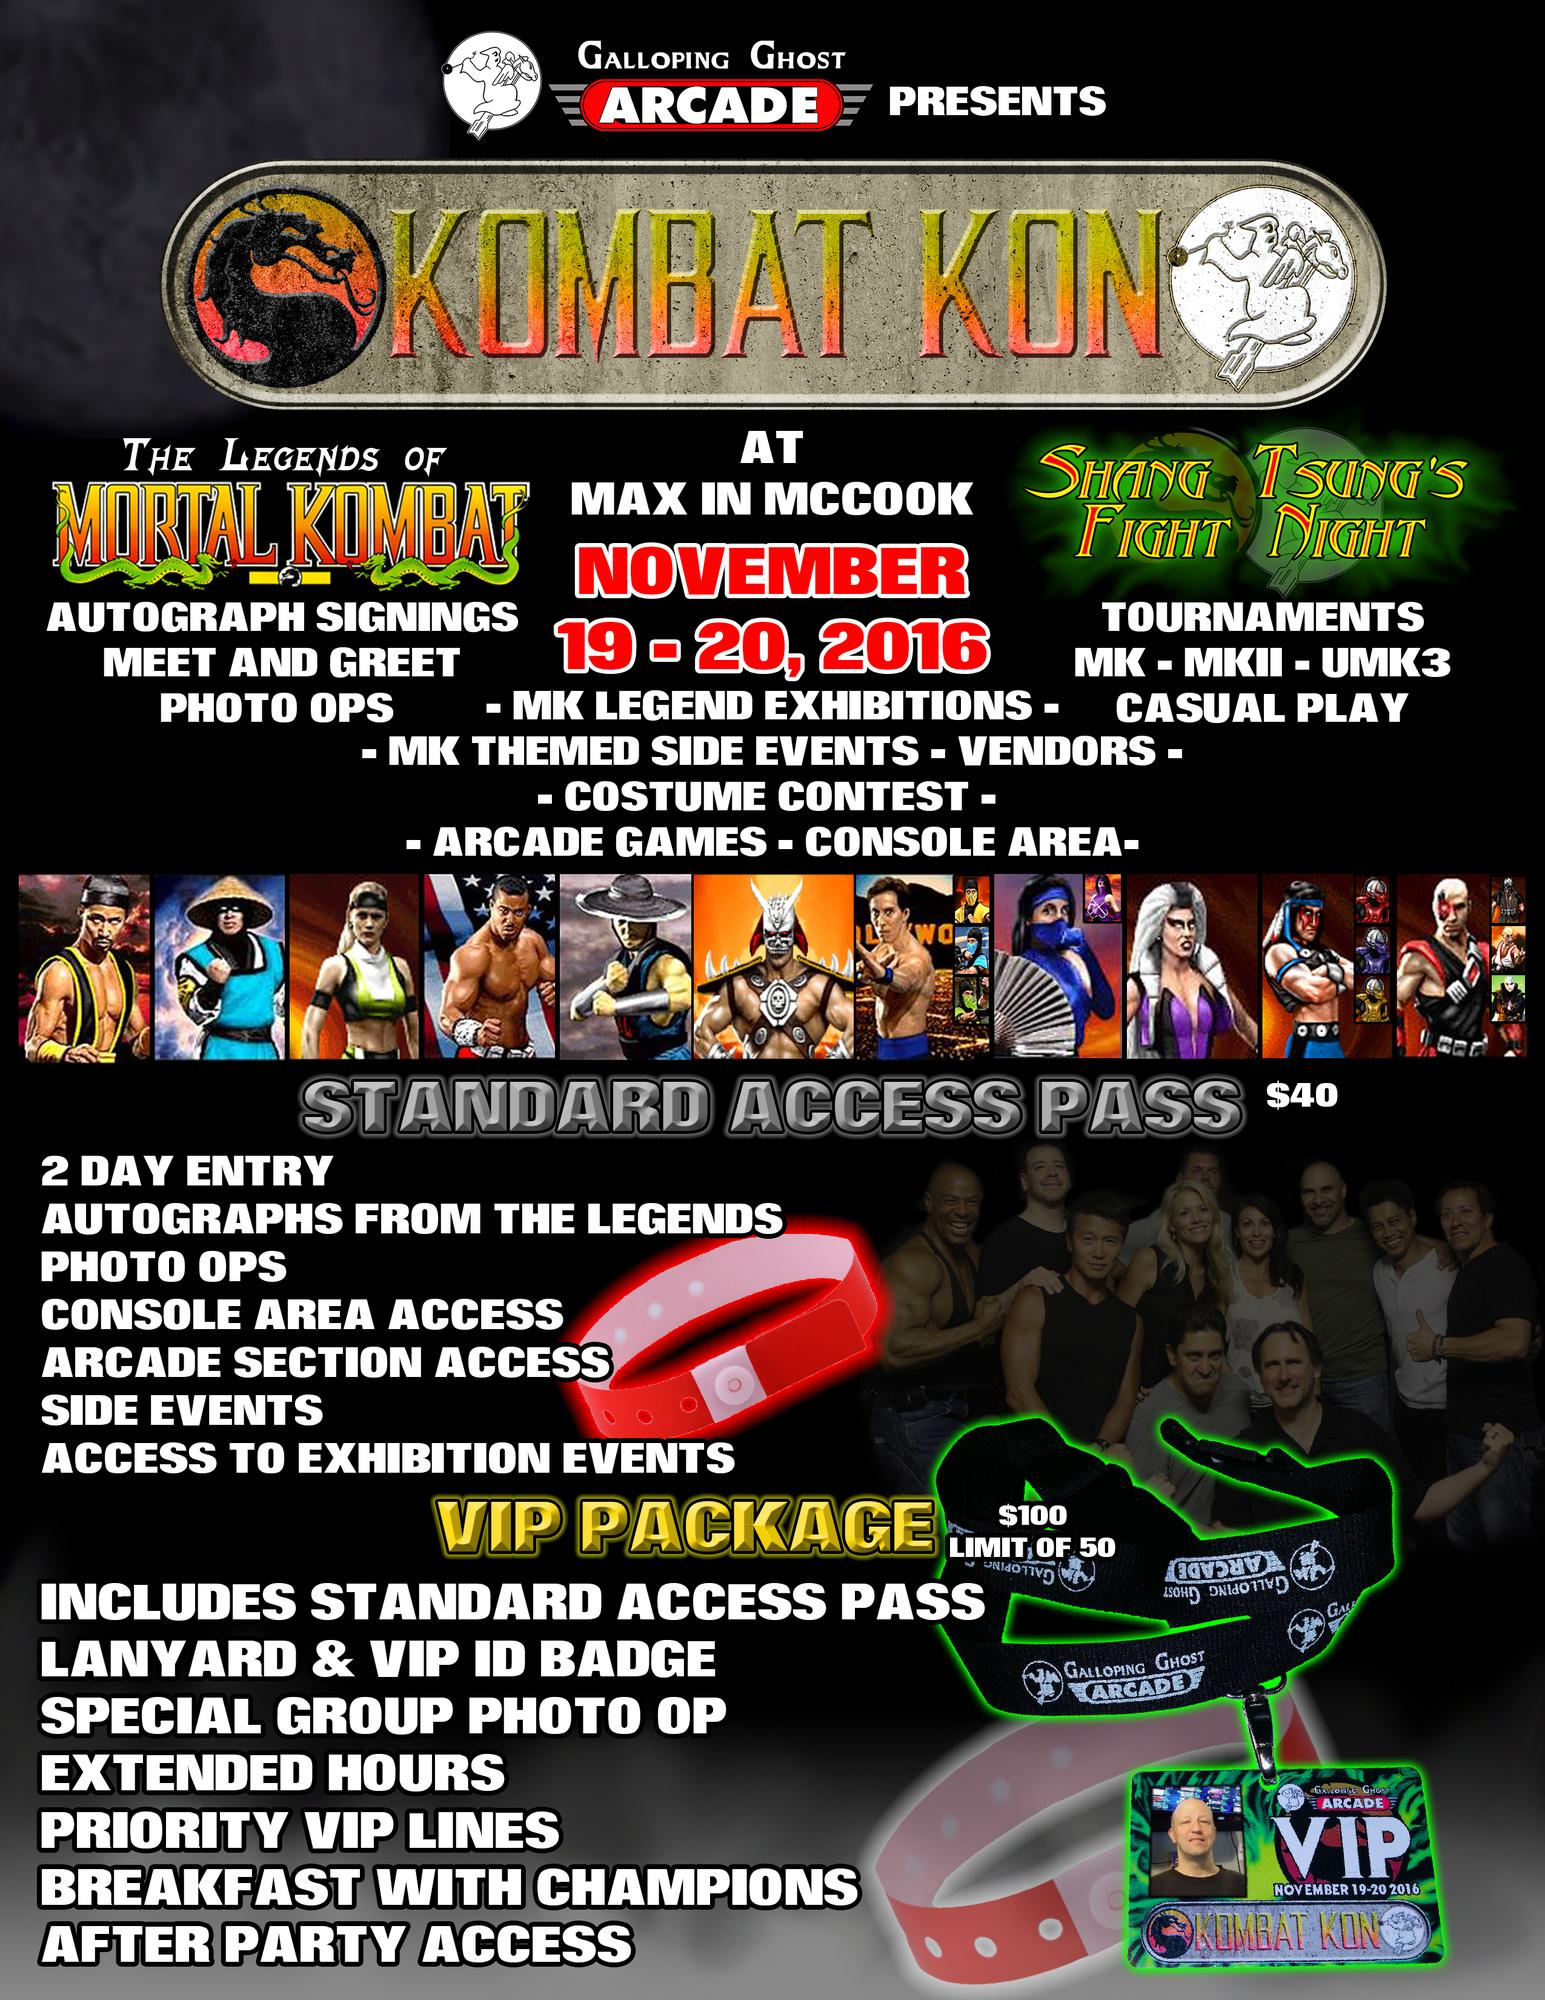 Kombat kon 2016 tickets in mccook il united states kristyandbryce Images